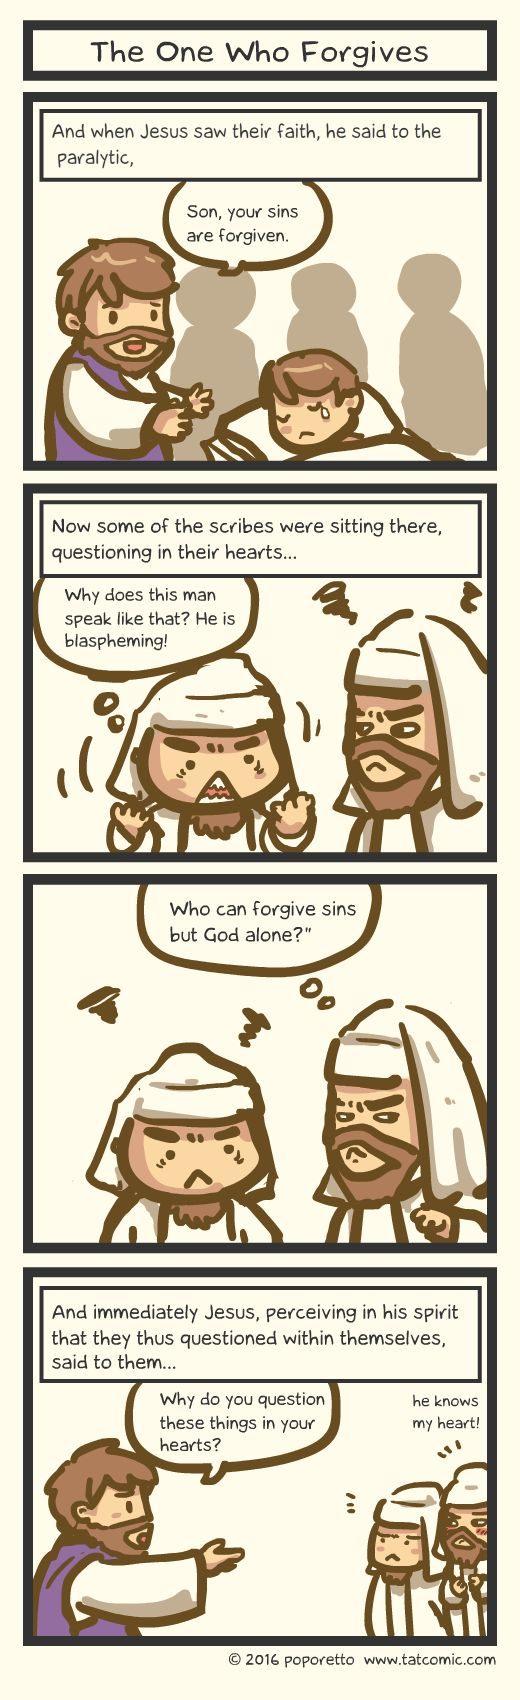 Book of mark comic gospel about how jesus healed the paralytic and the pharisee is angry